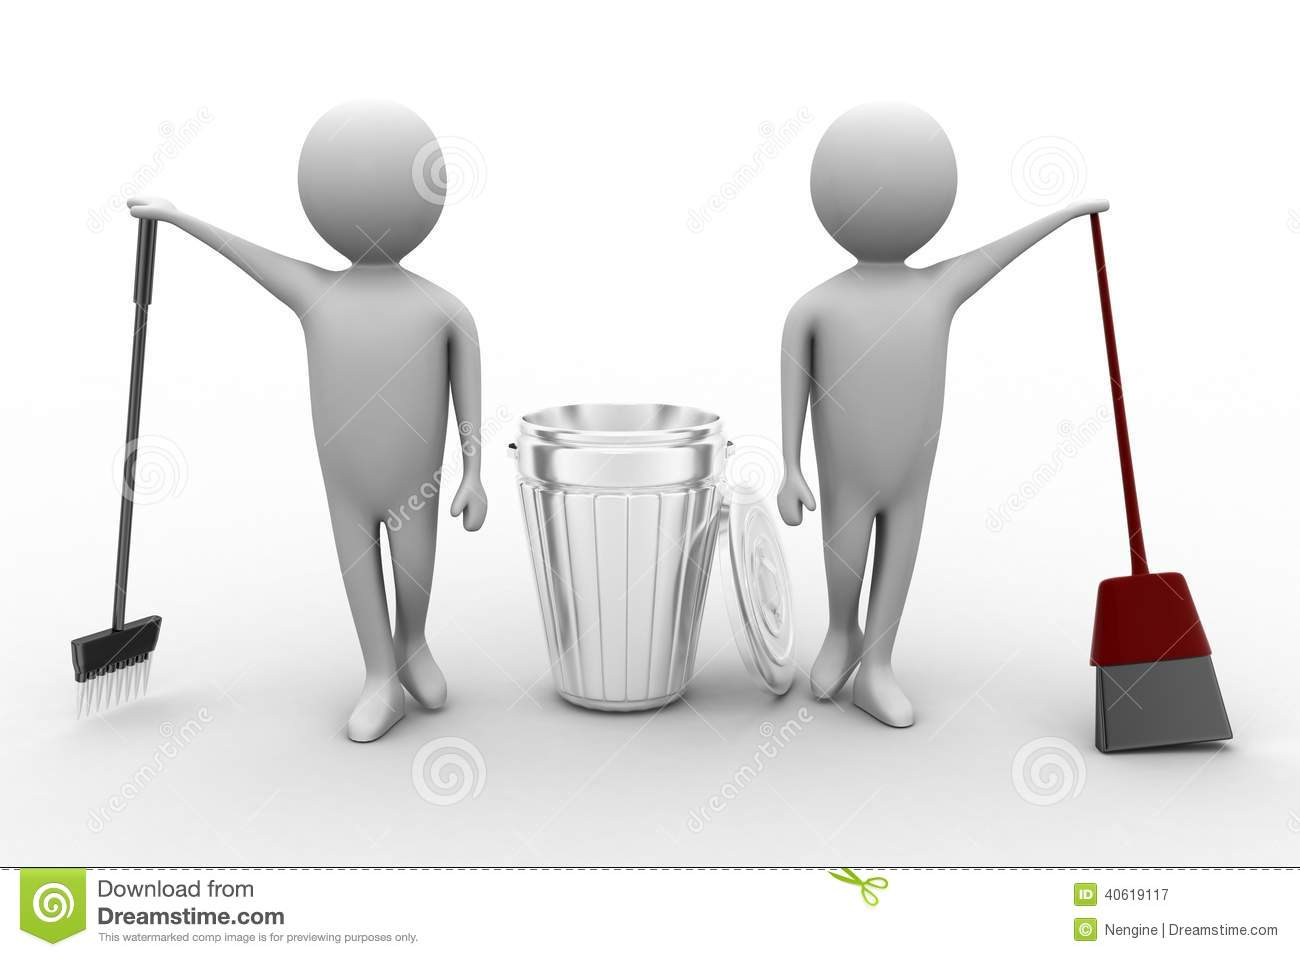 Royalty Free Stock Photography: 3d man with cleaning service. Image ...